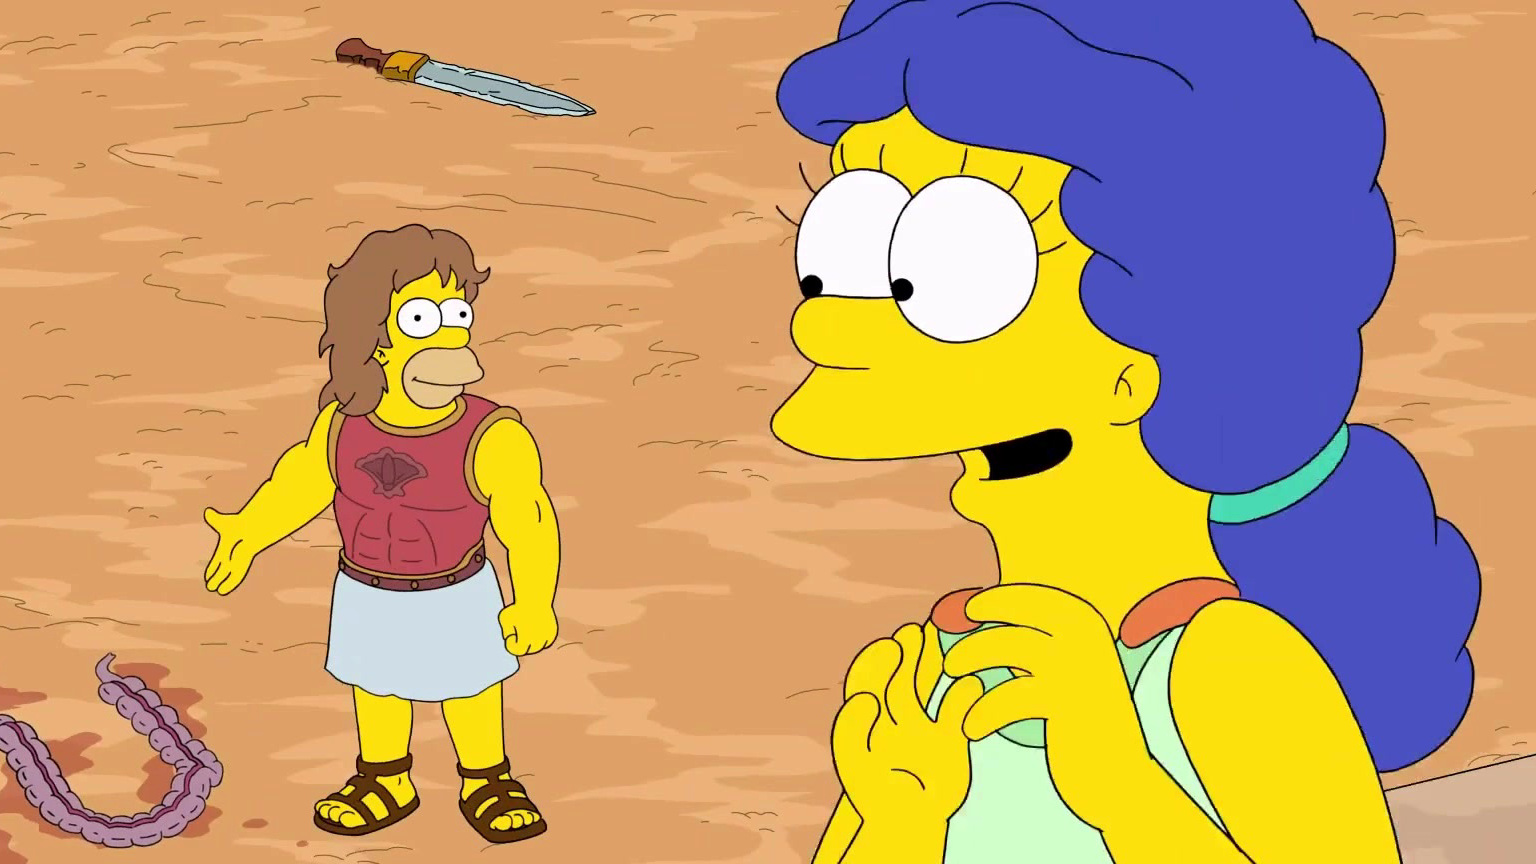 The Simpsons: A Gladiator Love Story